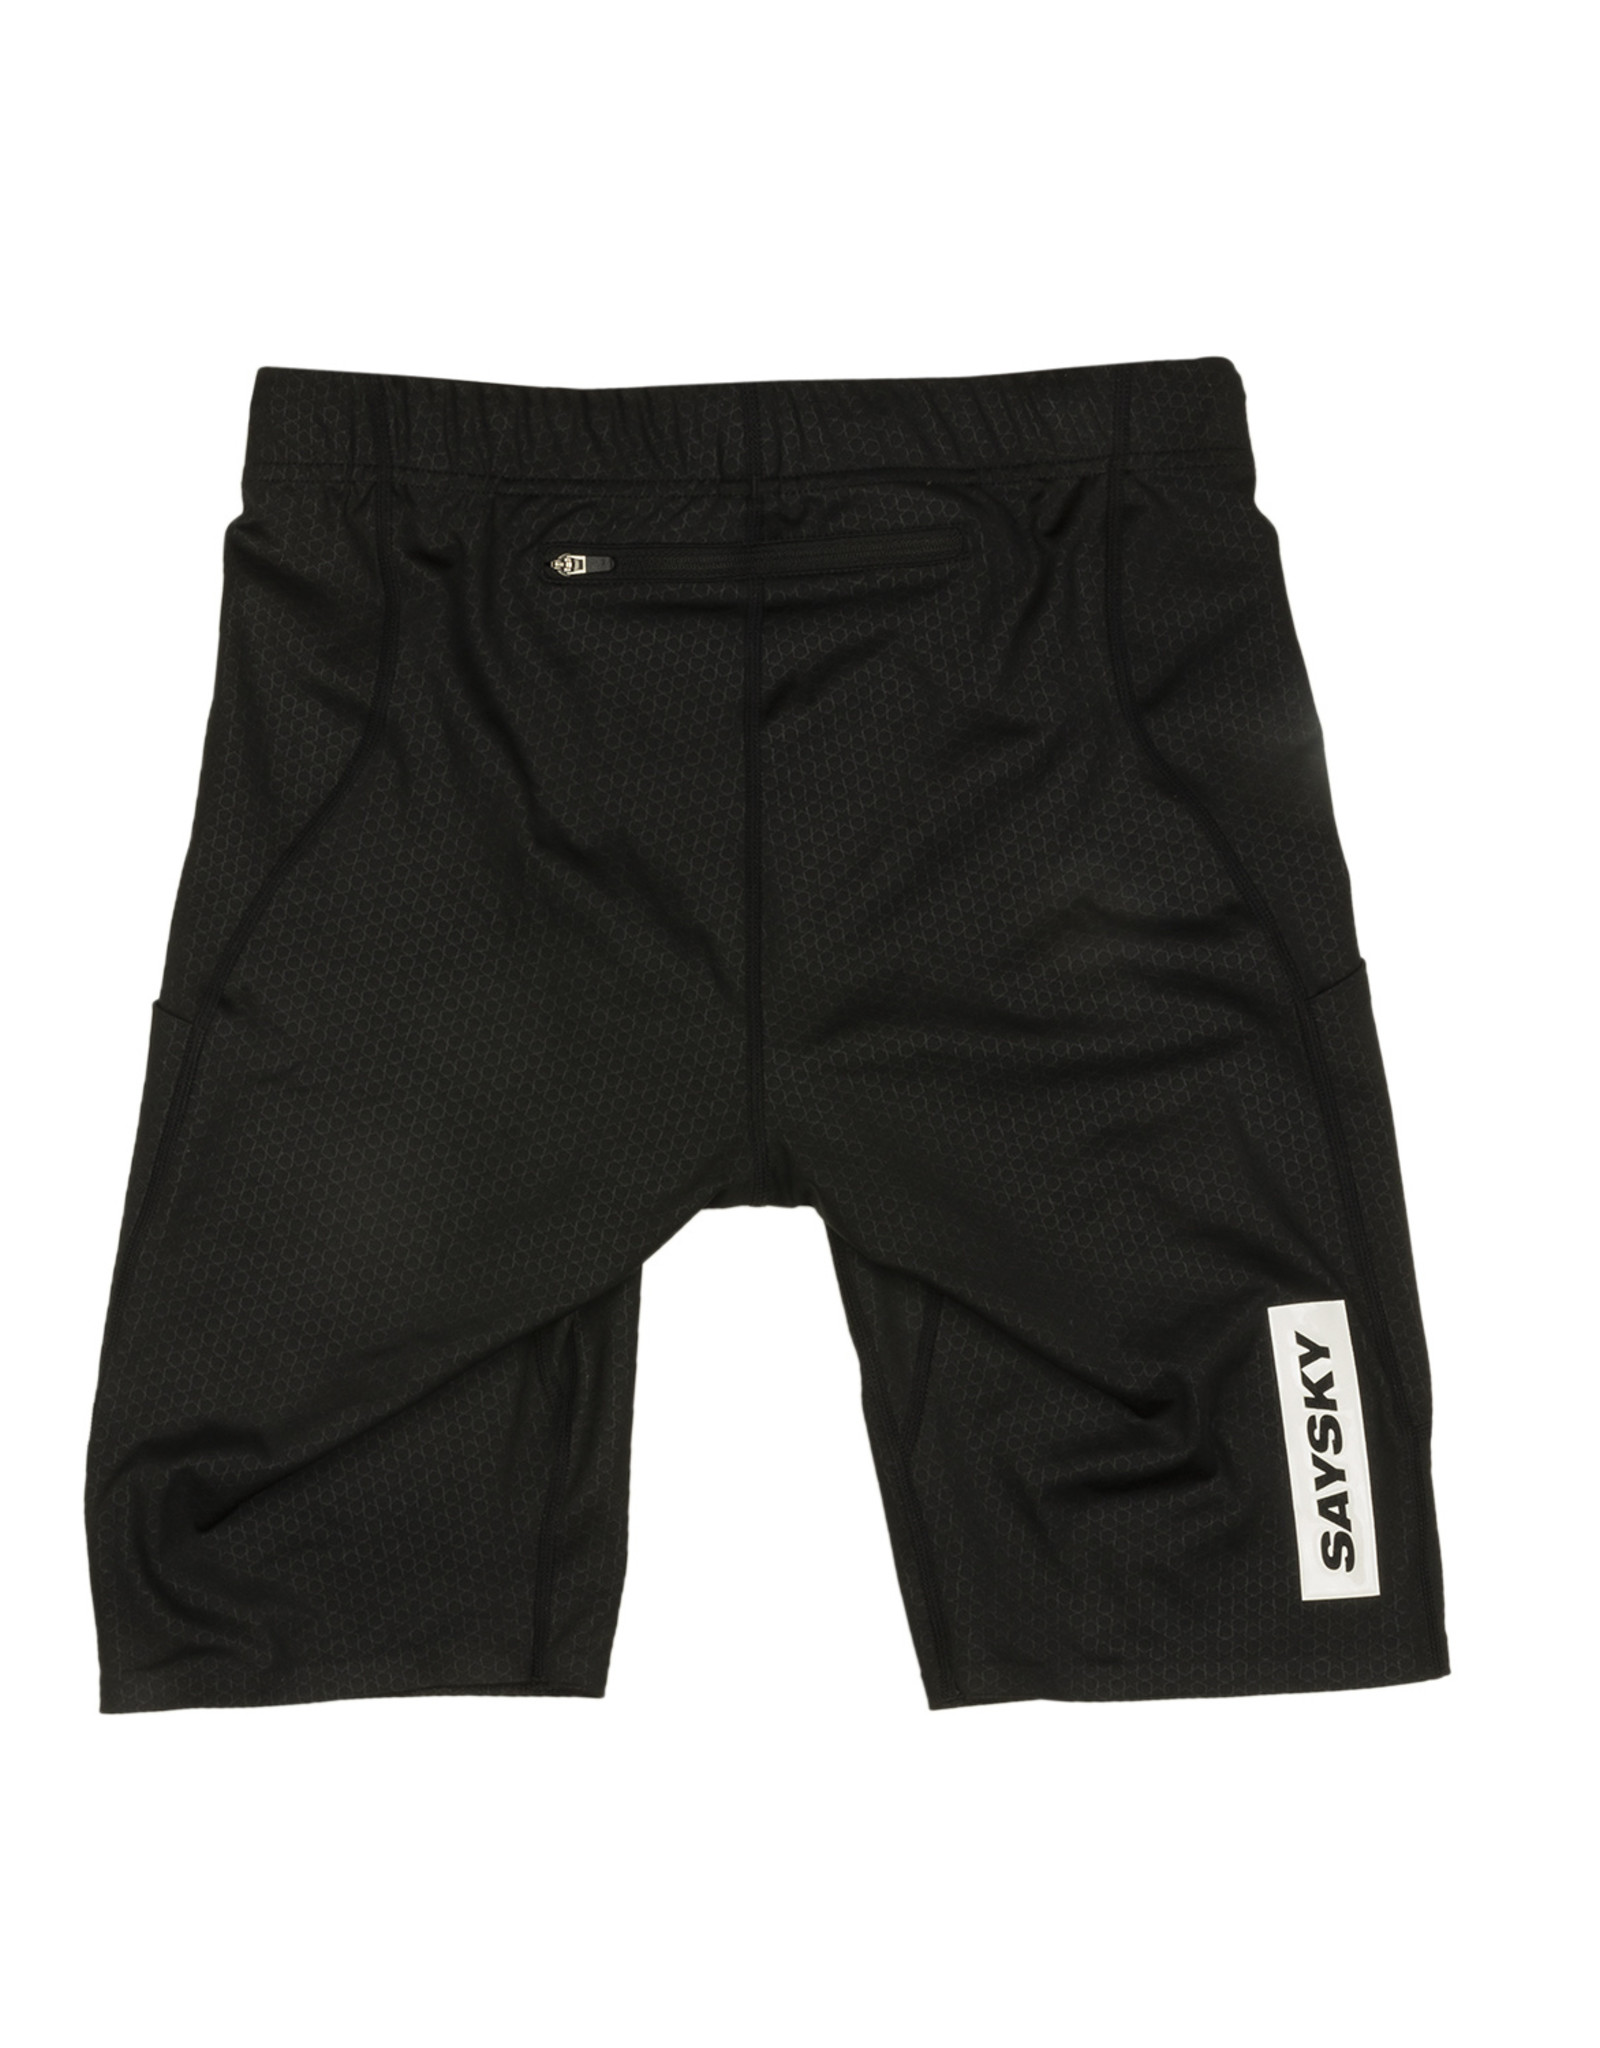 Saysky Short Eco Pace tights (FMRST01)